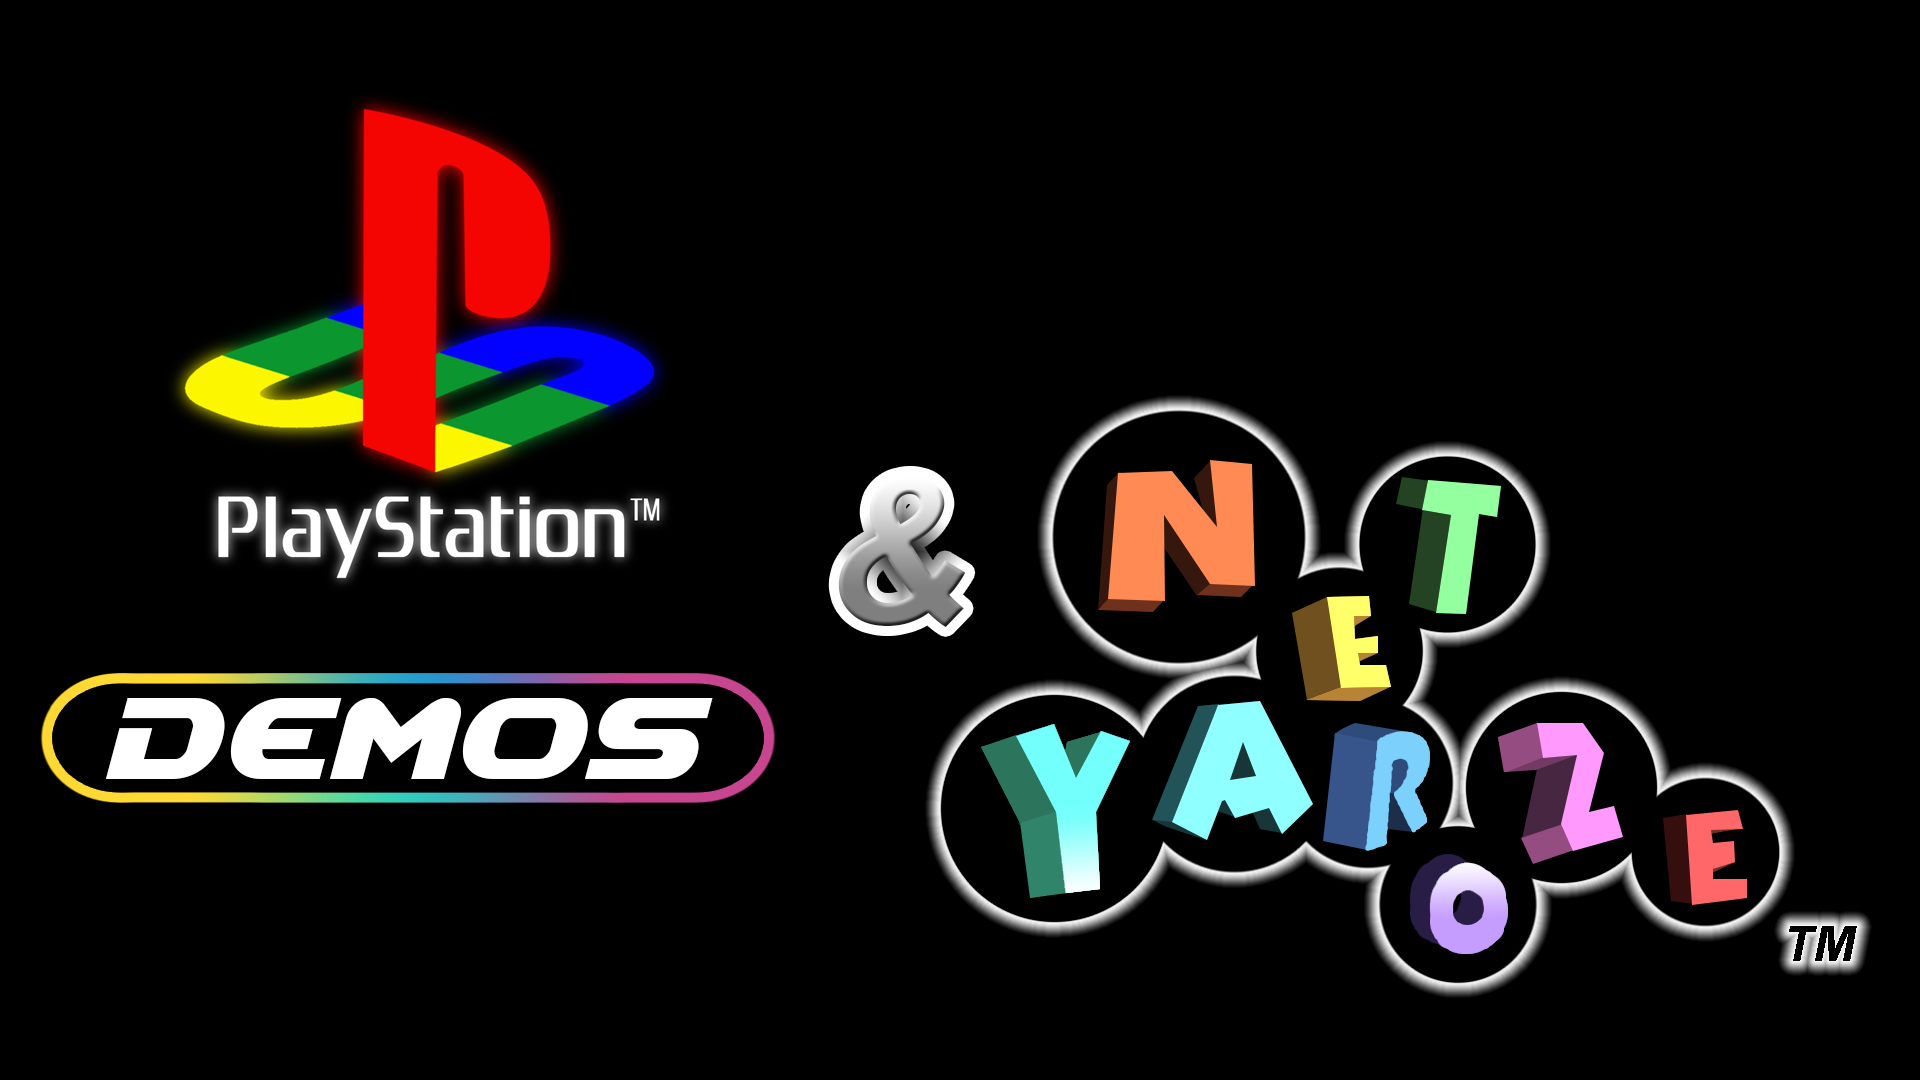 PlayStation Demos & Net Yaroze Logo